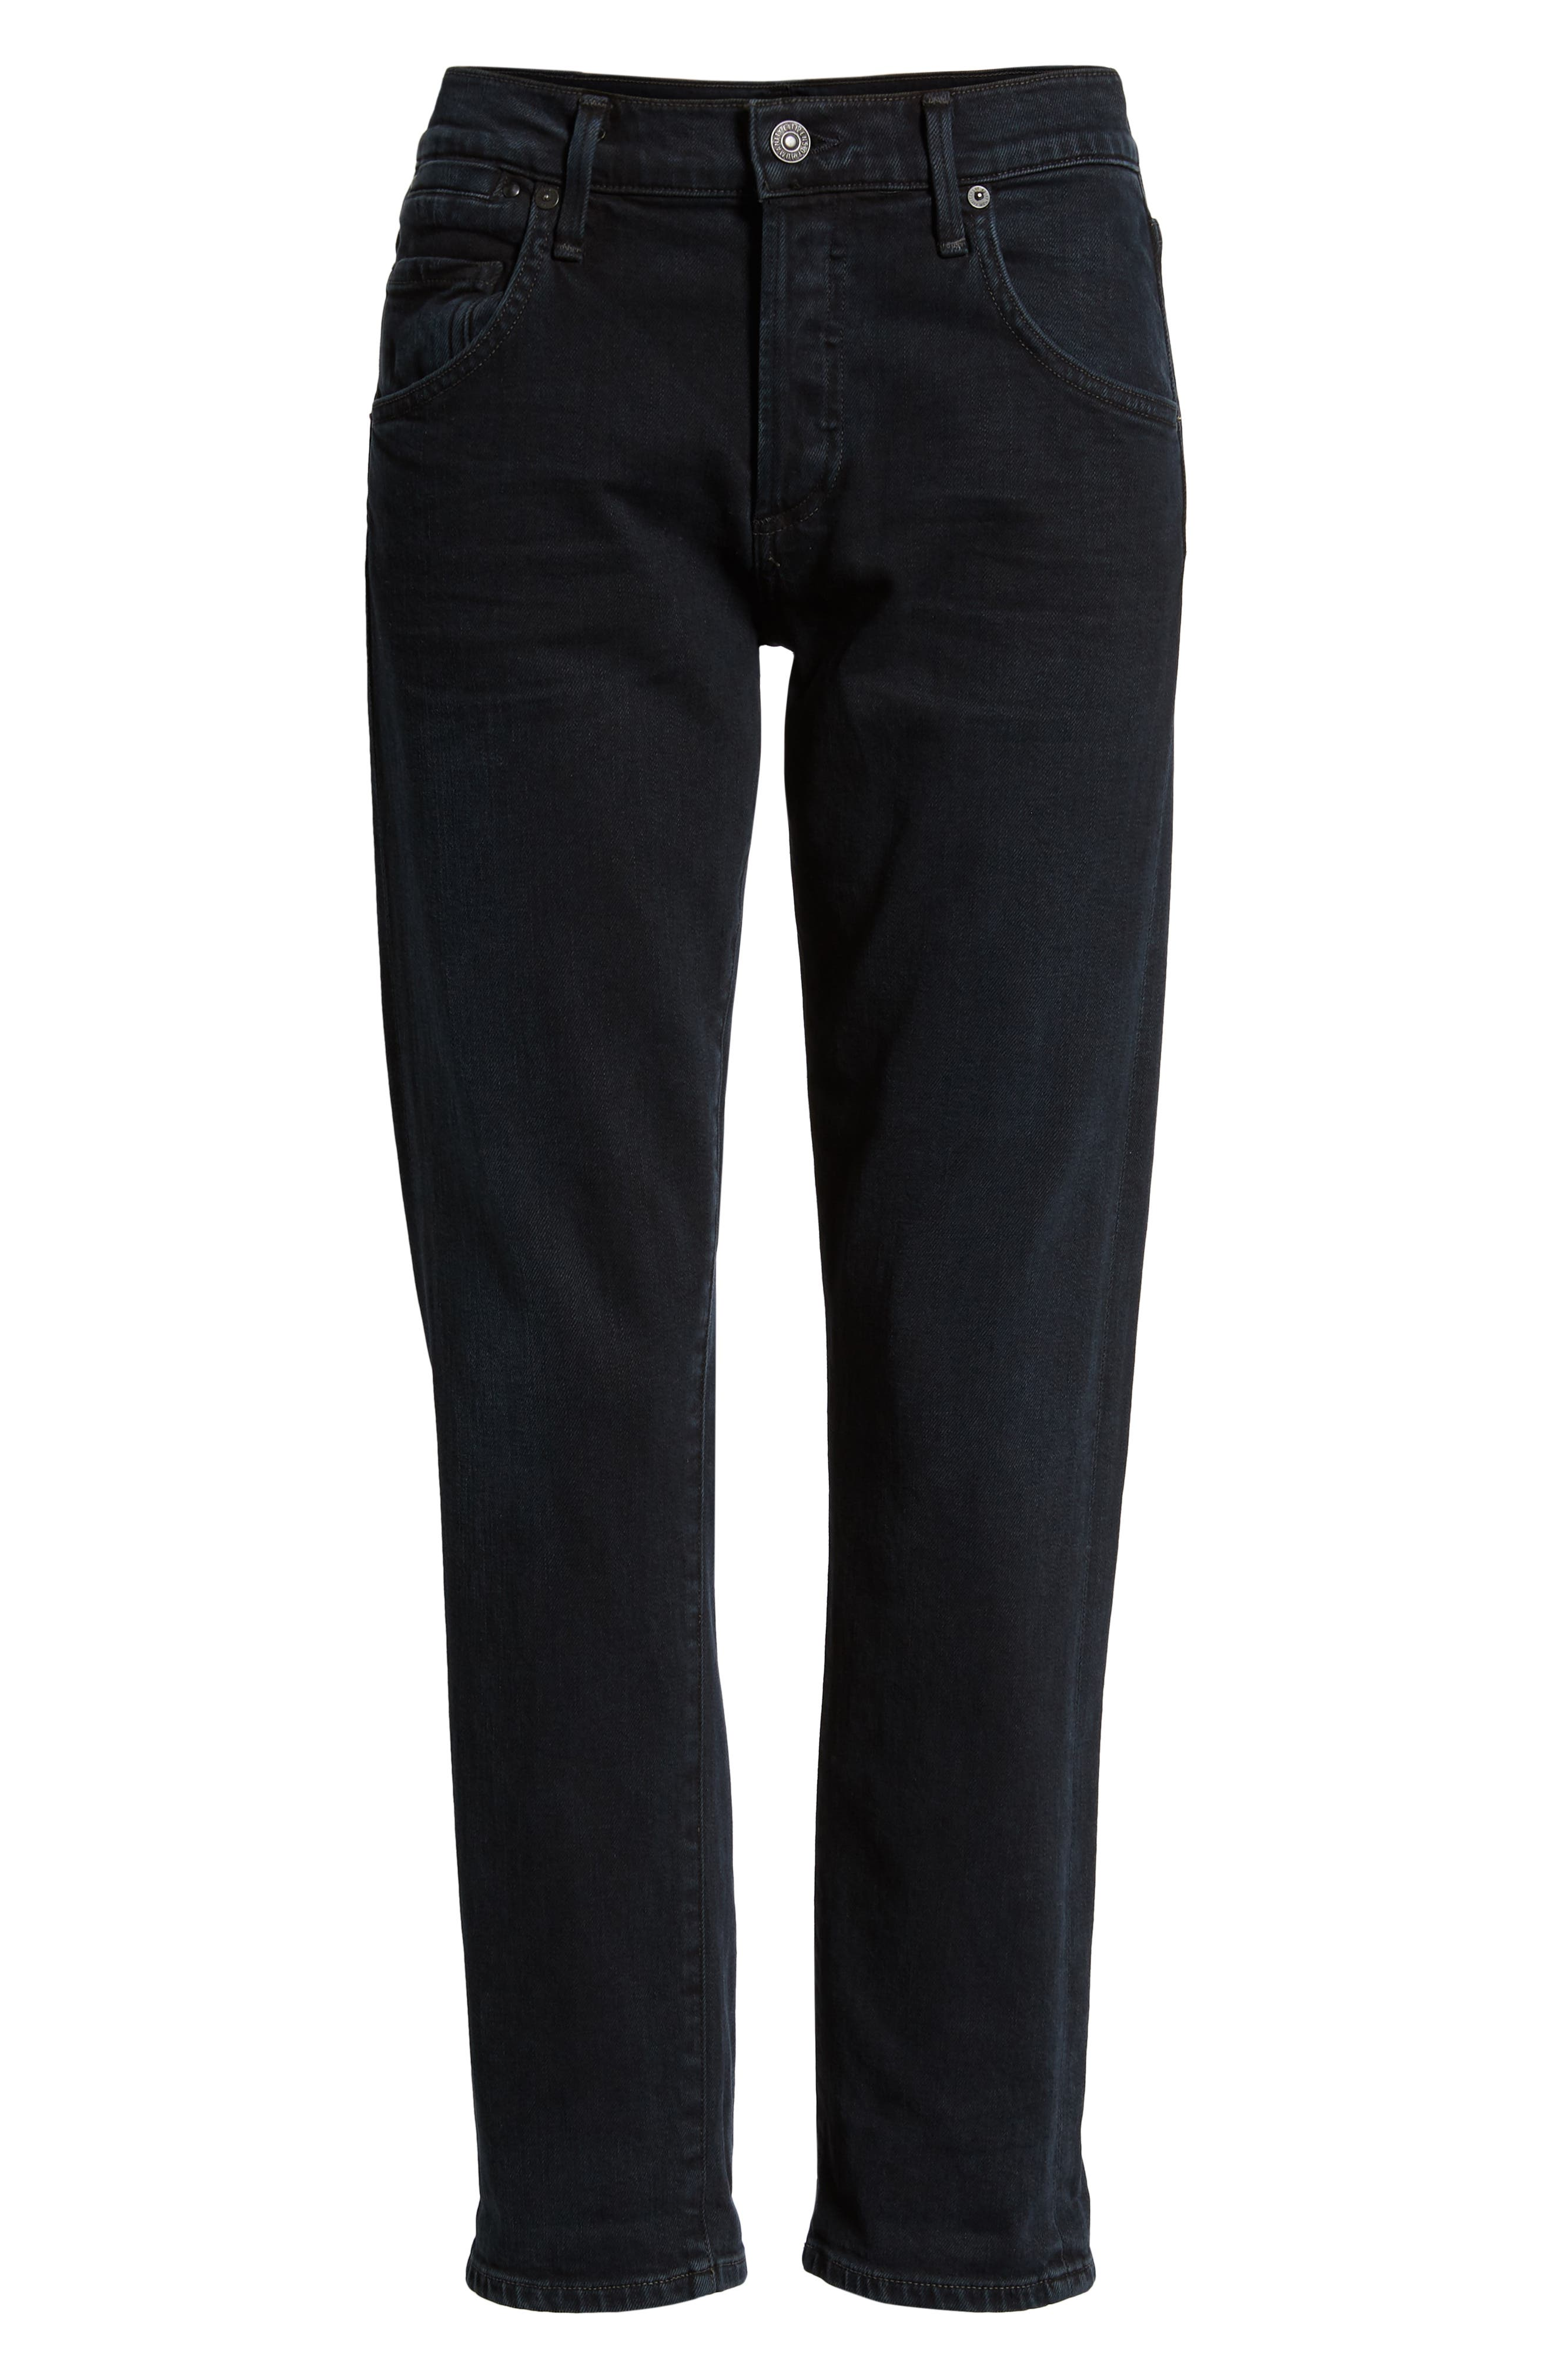 CITIZENS OF HUMANITY, Emerson Slim Boyfriend Jeans, Alternate thumbnail 7, color, NIGHT SHADE